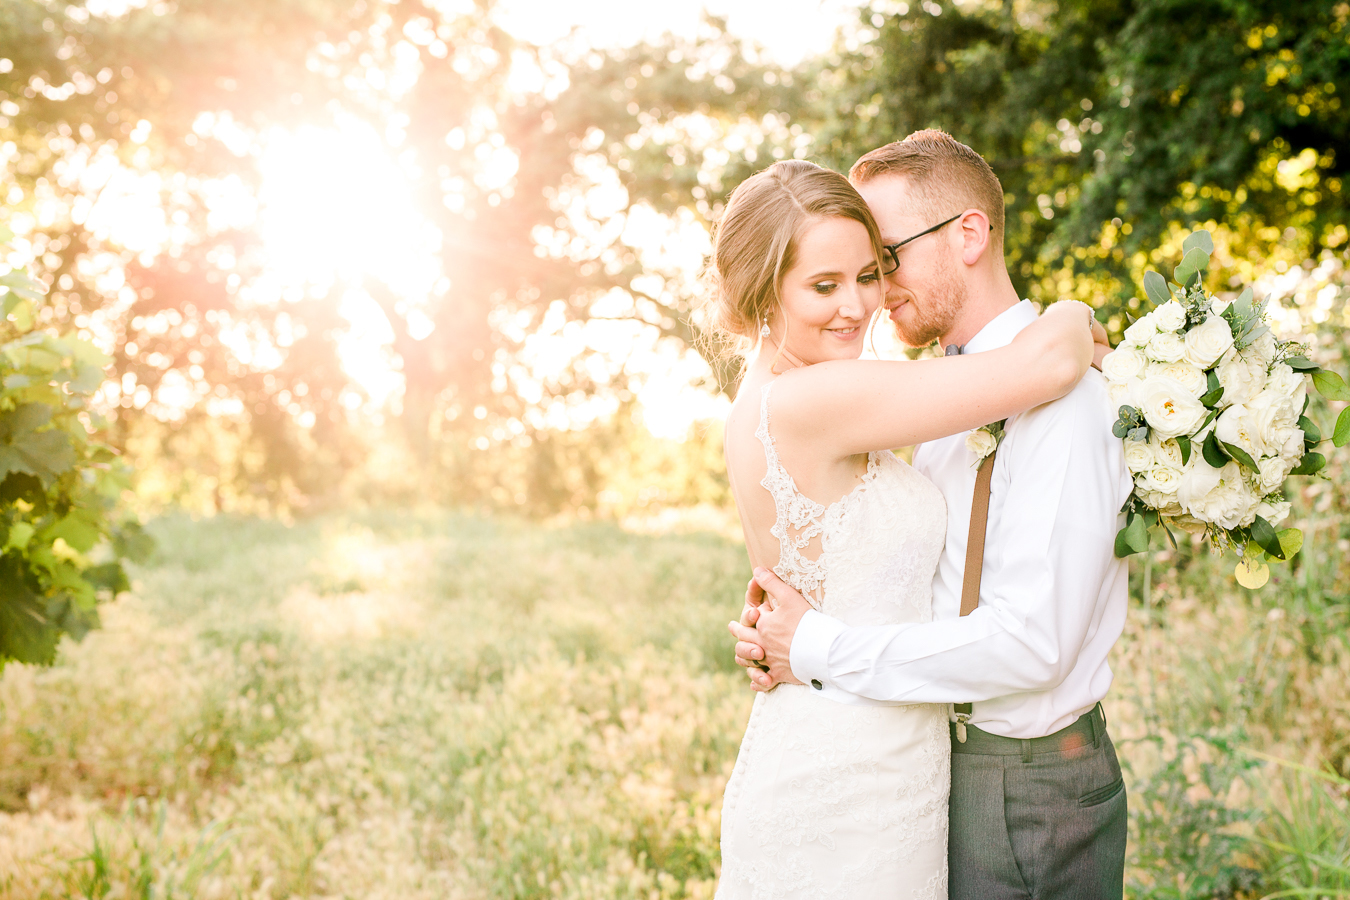 Bride and groom embracing during golden hour